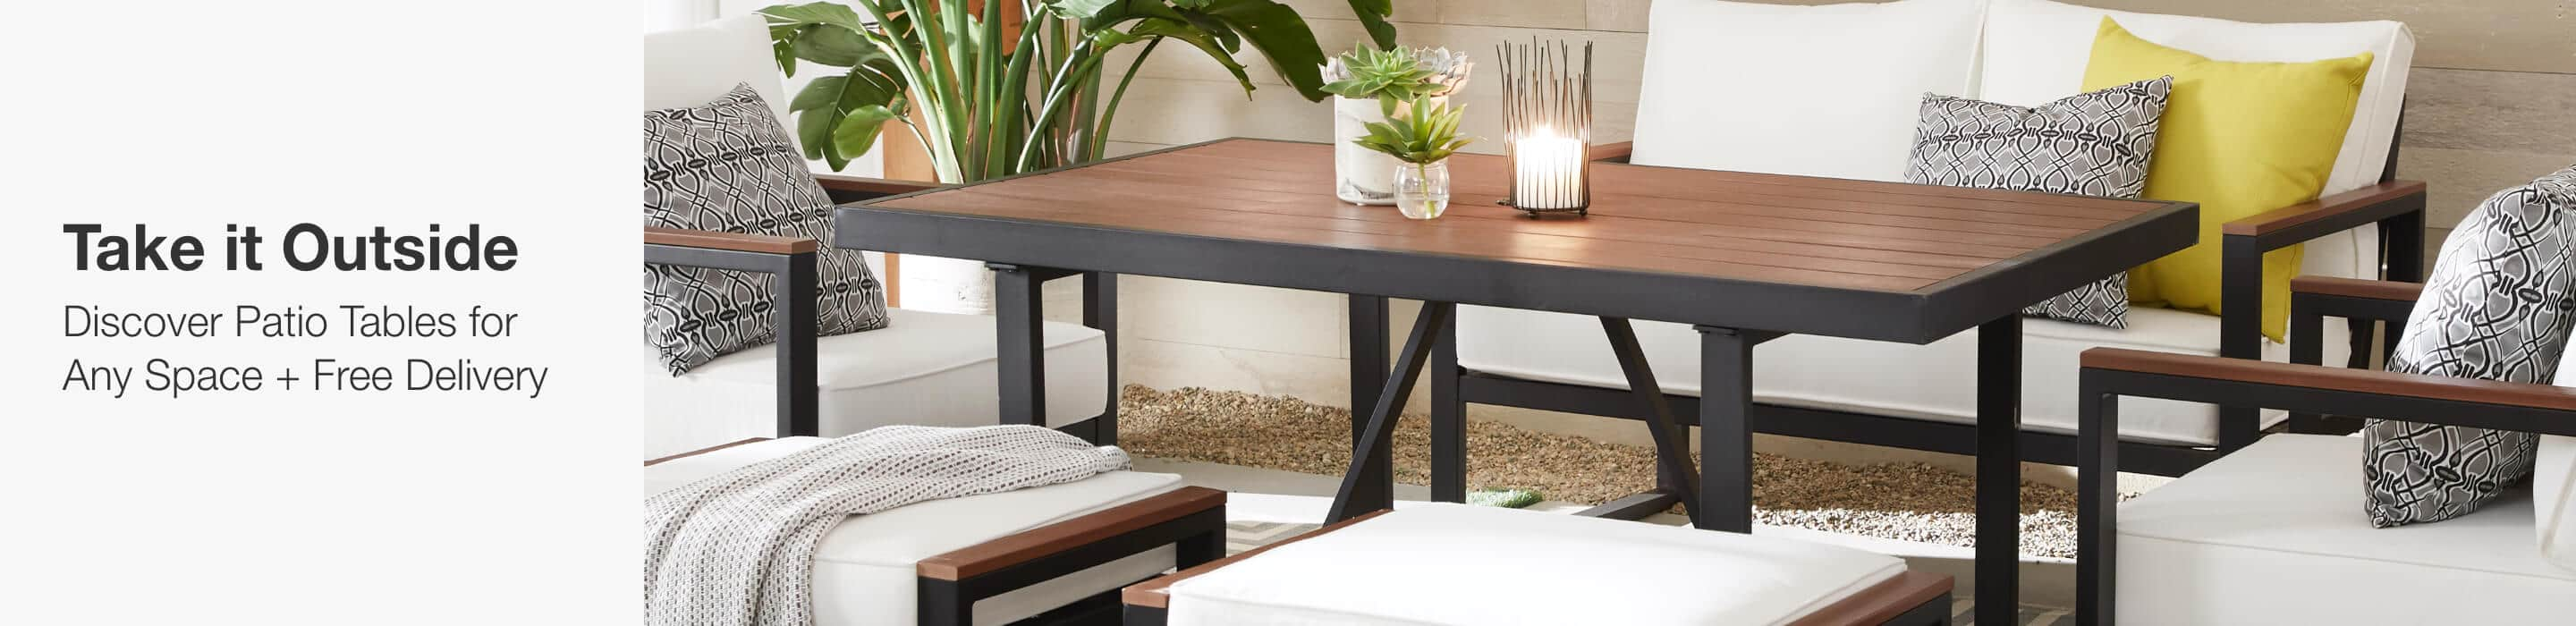 TAKE IT OUTSIDE Discover Patio Tables for Any Space + Free Delivery